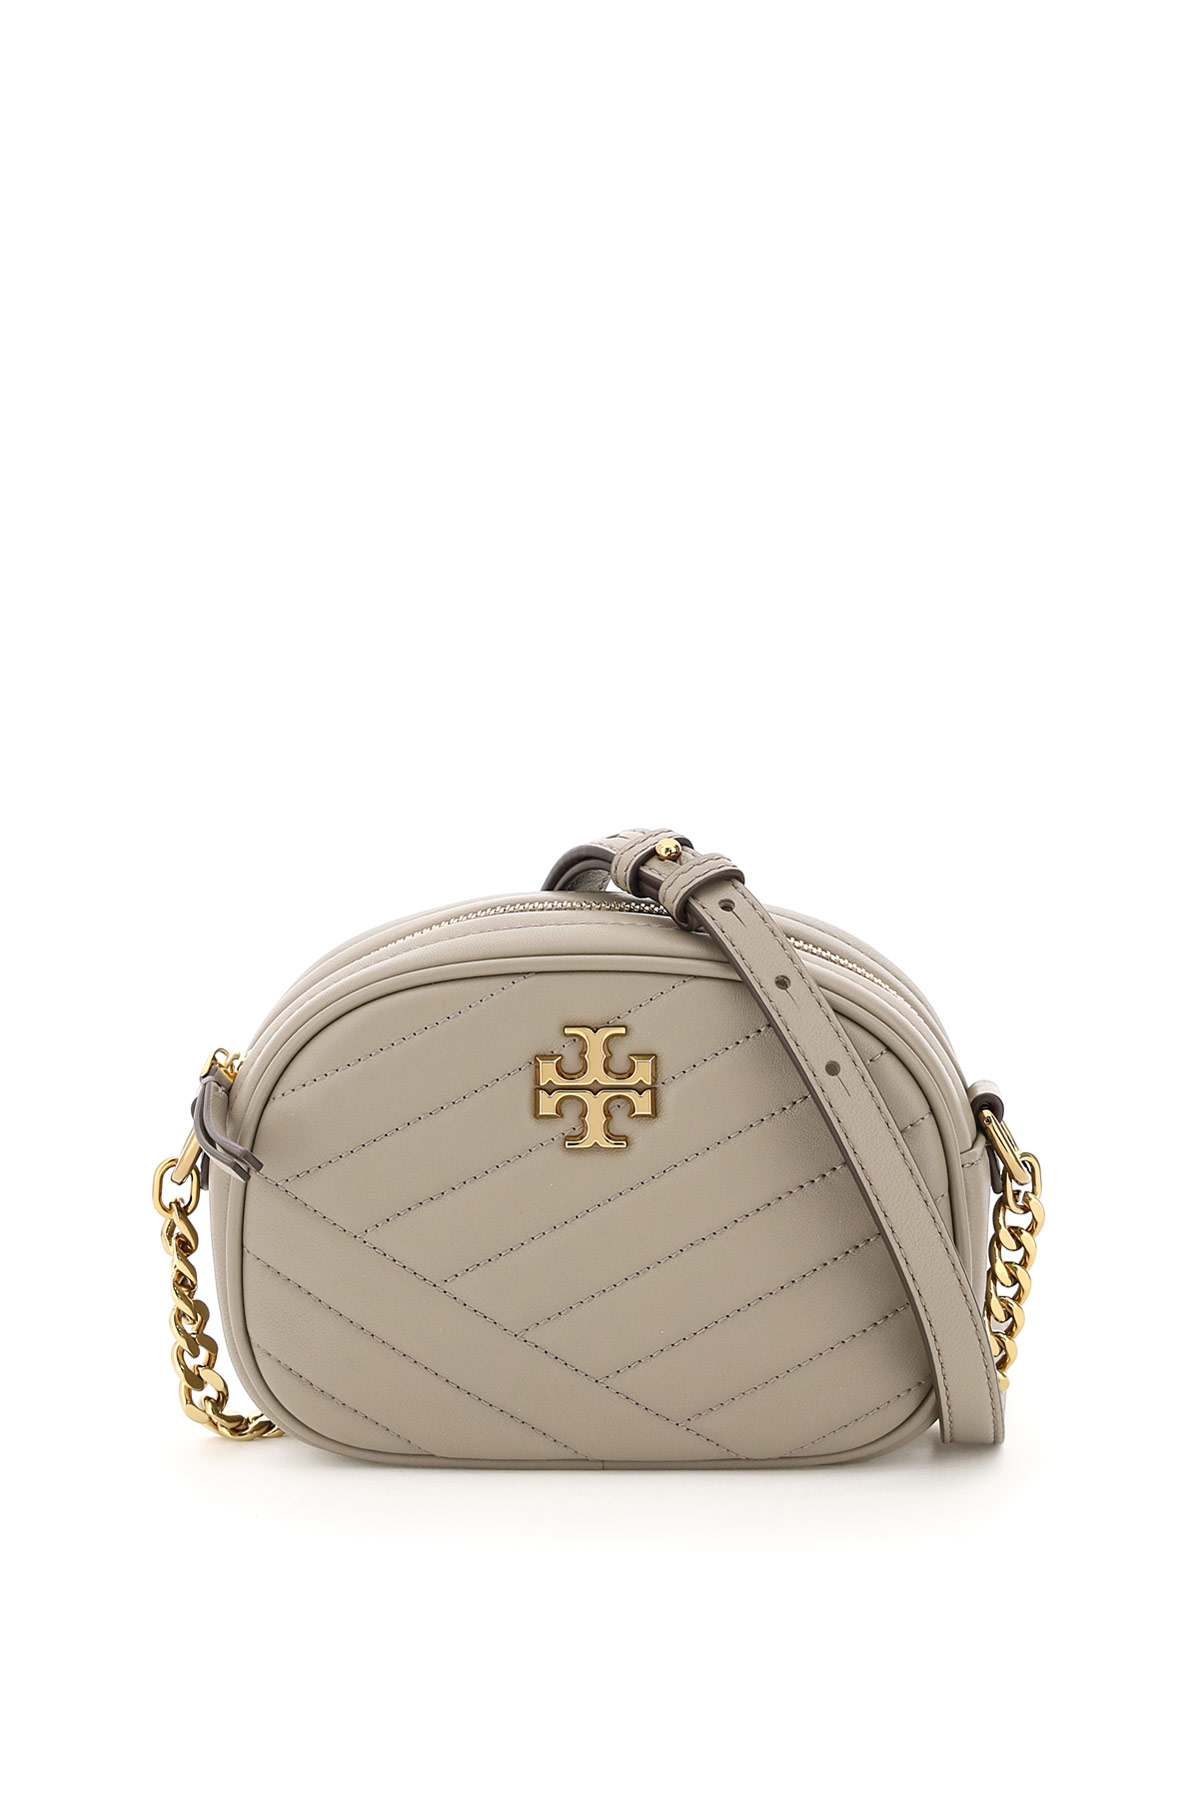 TORY BURCH CHEVRON KIRA BAG